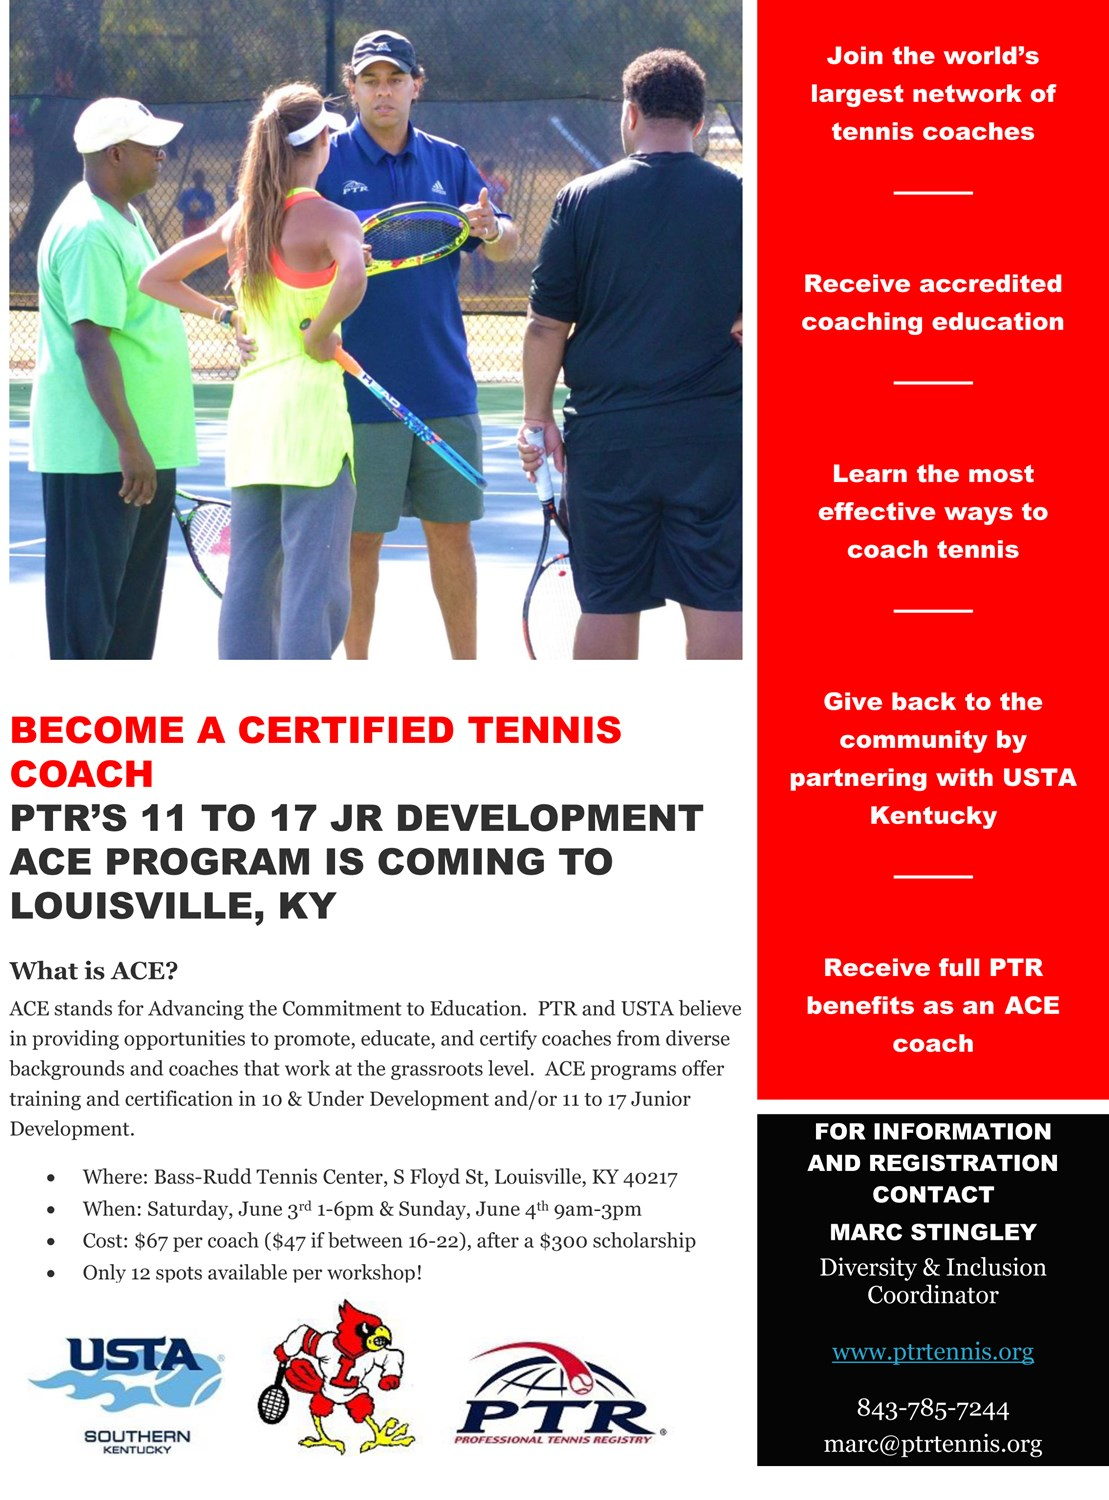 Diverse Coaches Scholarship Available For Ptr Ace Certification